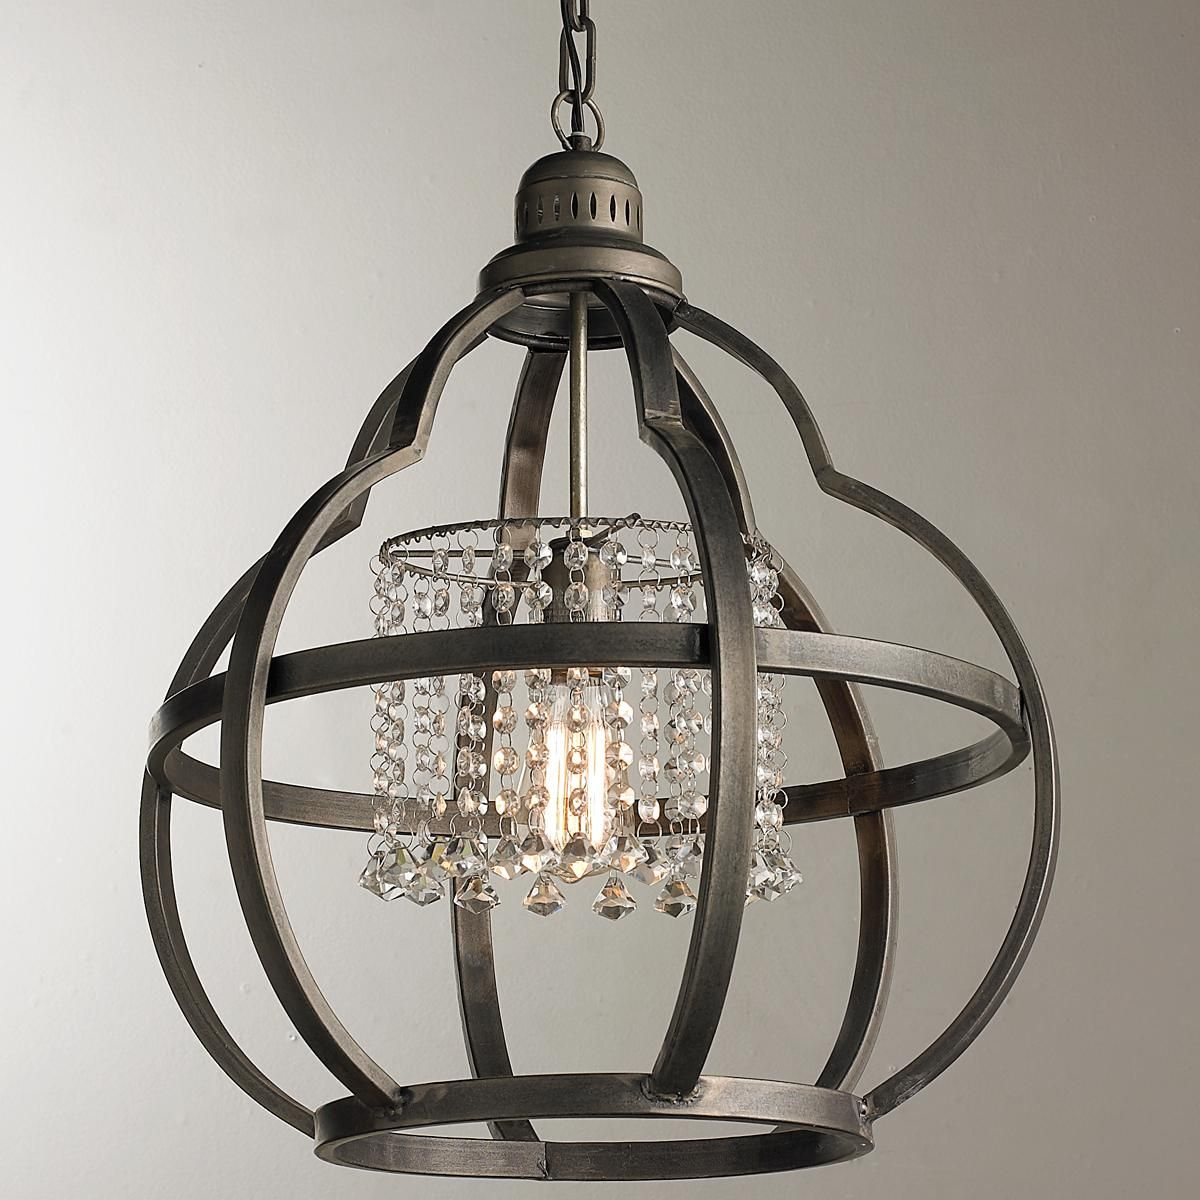 Quatrefoil Cage And Crystals Pendant Light Crystal Pendant Lighting Metal Pendant Light Pendant Light